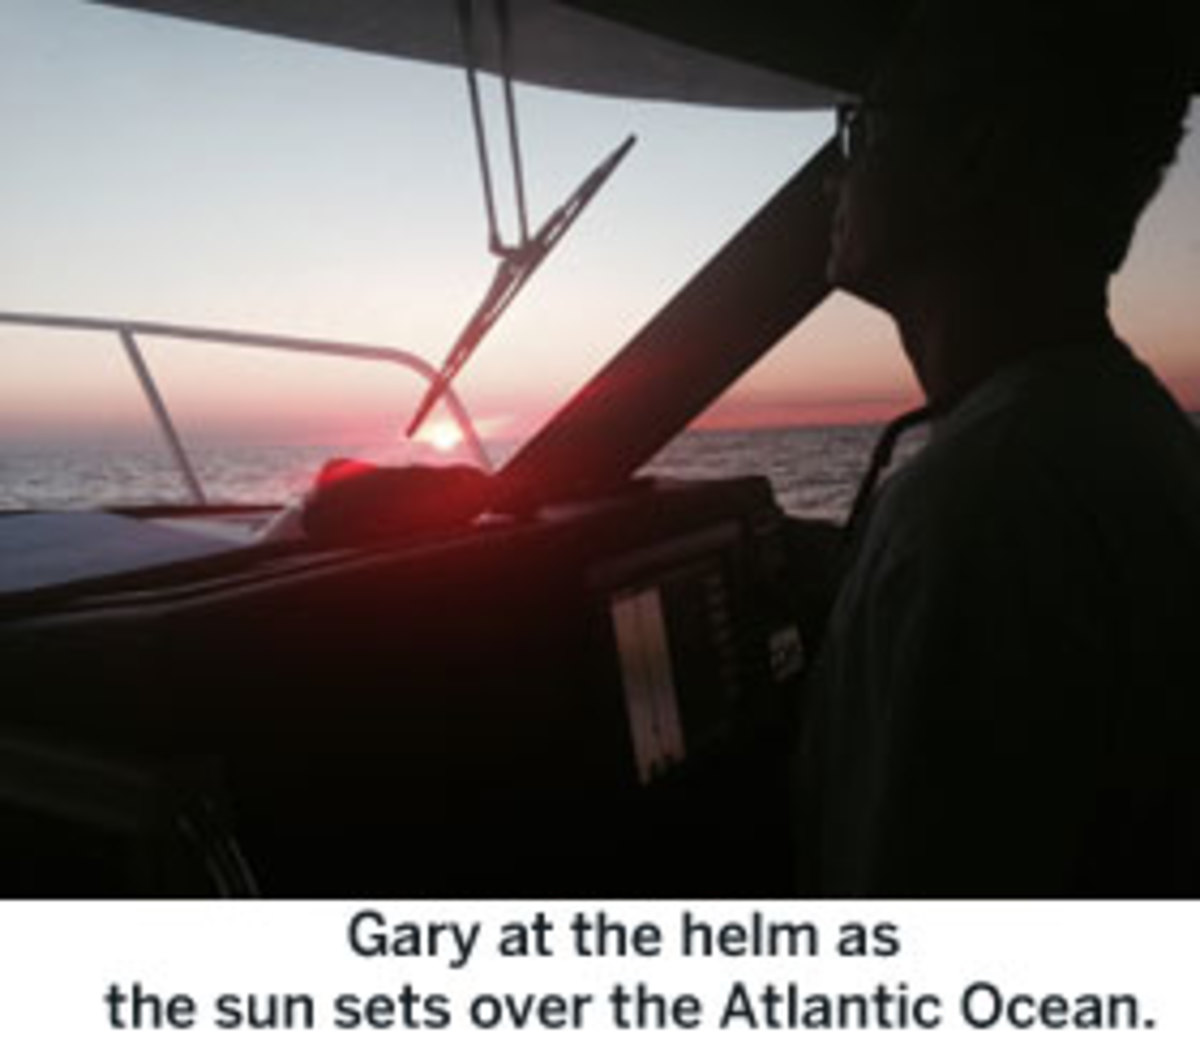 Gary at the helm as the sun sets over the Atlantic Ocean.